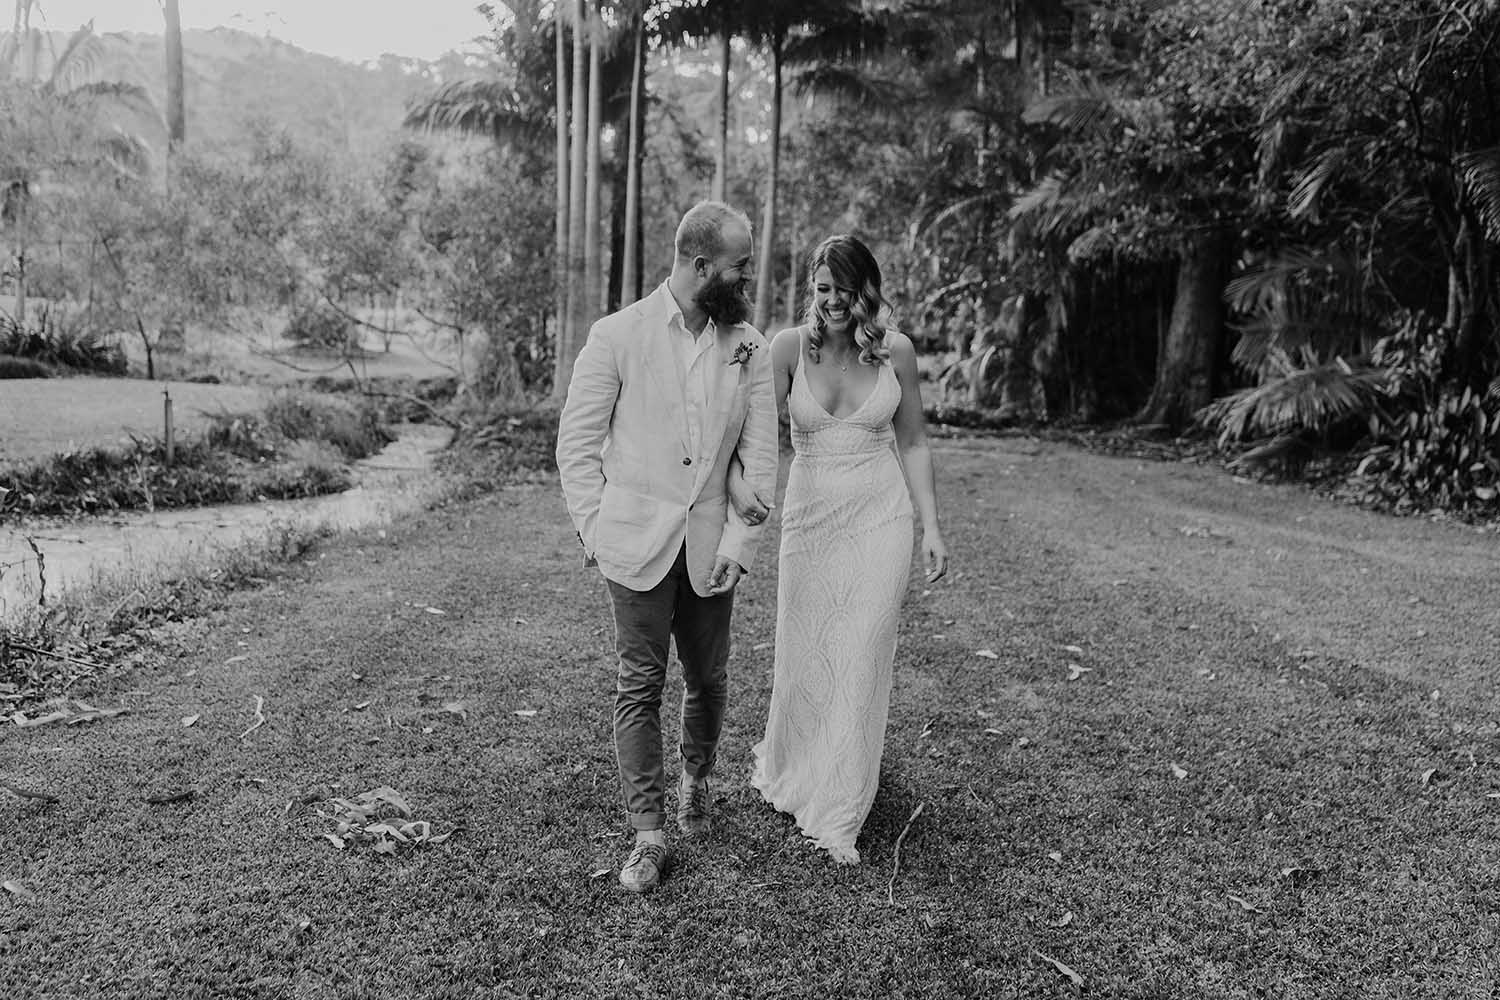 Bride and groom walking holding hands looking at each other laughing - wedding photographer - mid north coast wedding photographer - Nambucca valley photographer - elopment